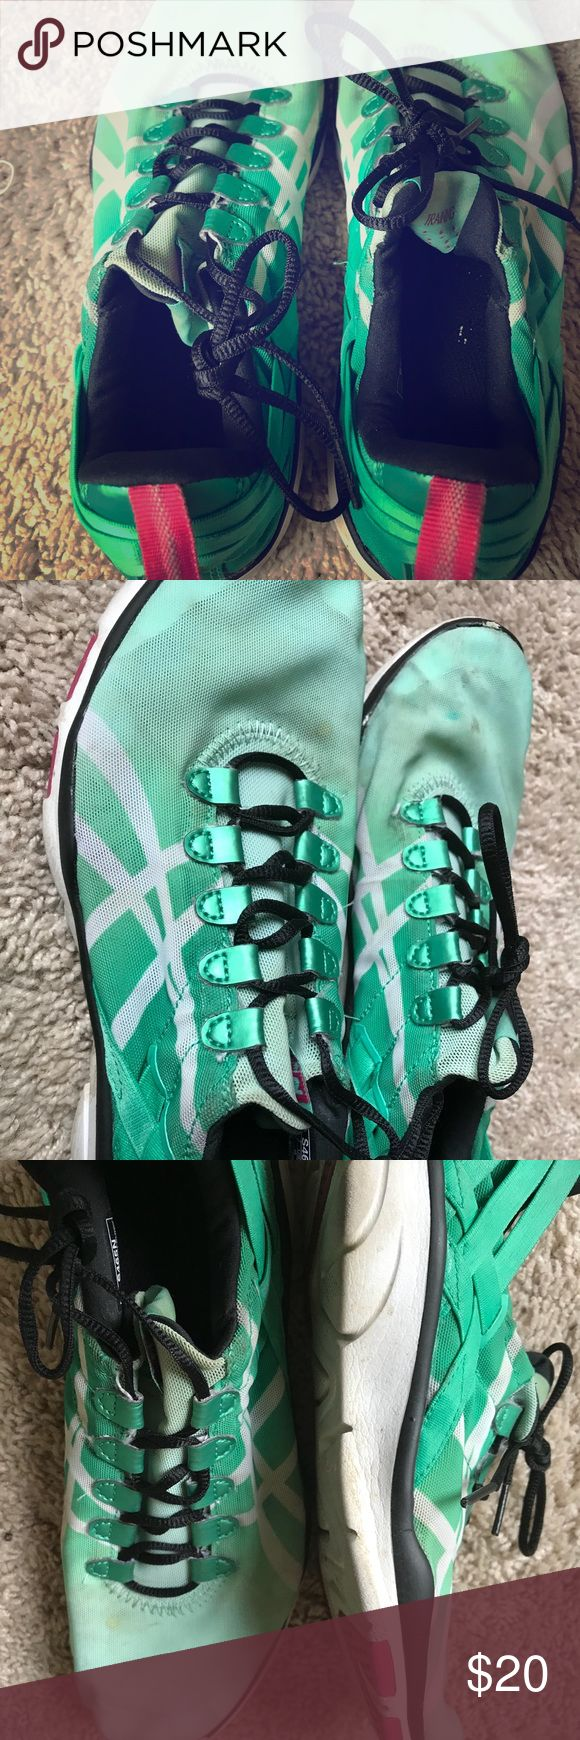 Turquoise Asics training shoe! Women size 8! Pretty worn, but still in excellent condition. Asics turquoise training shoe. Size 8 in women's. White ASICS signs on side. asics Shoes Athletic Shoes